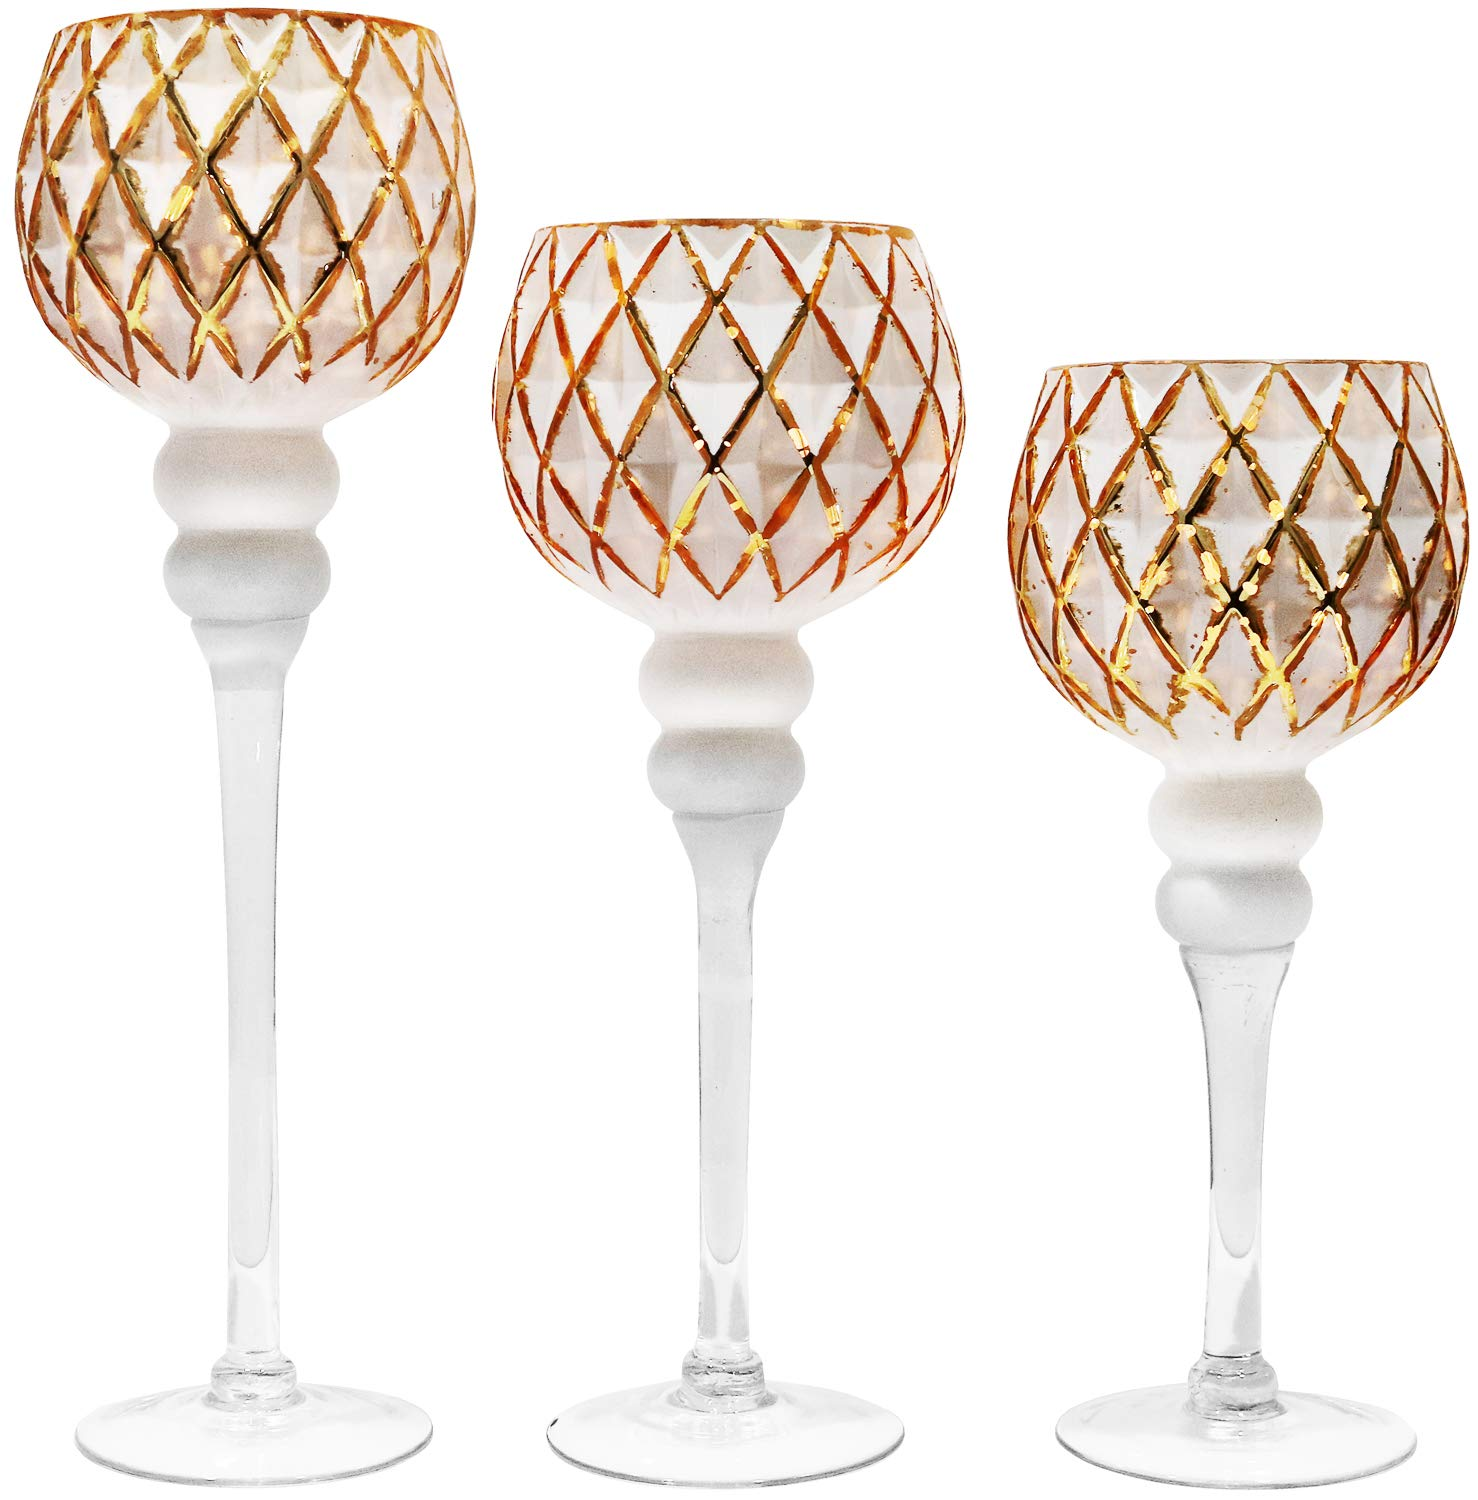 Galashield Votive Glass Candle Holders Set of 3 Tealight Hurricane Candle Stand Centerpieces for Wedding Table Gold/White (16'', 13.5'', 12'' High)